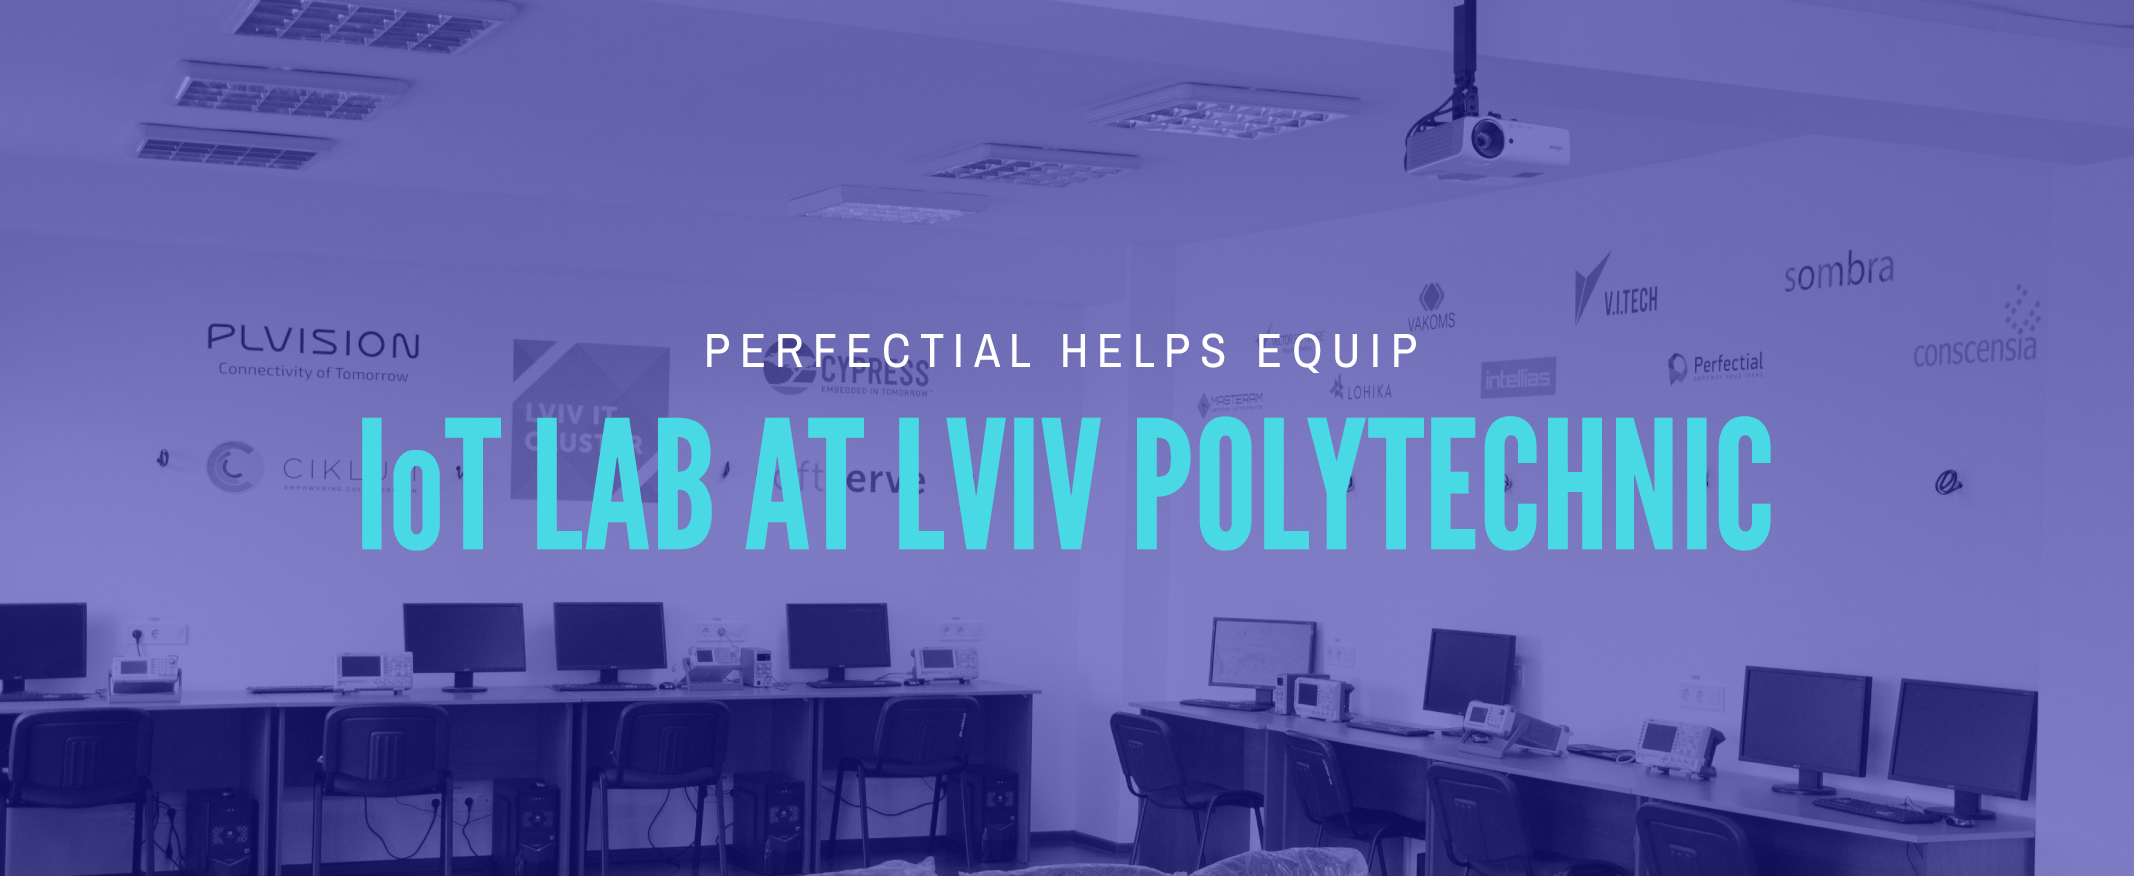 Perfectial Helps Equip IoT Lab at Local Polytechnic University